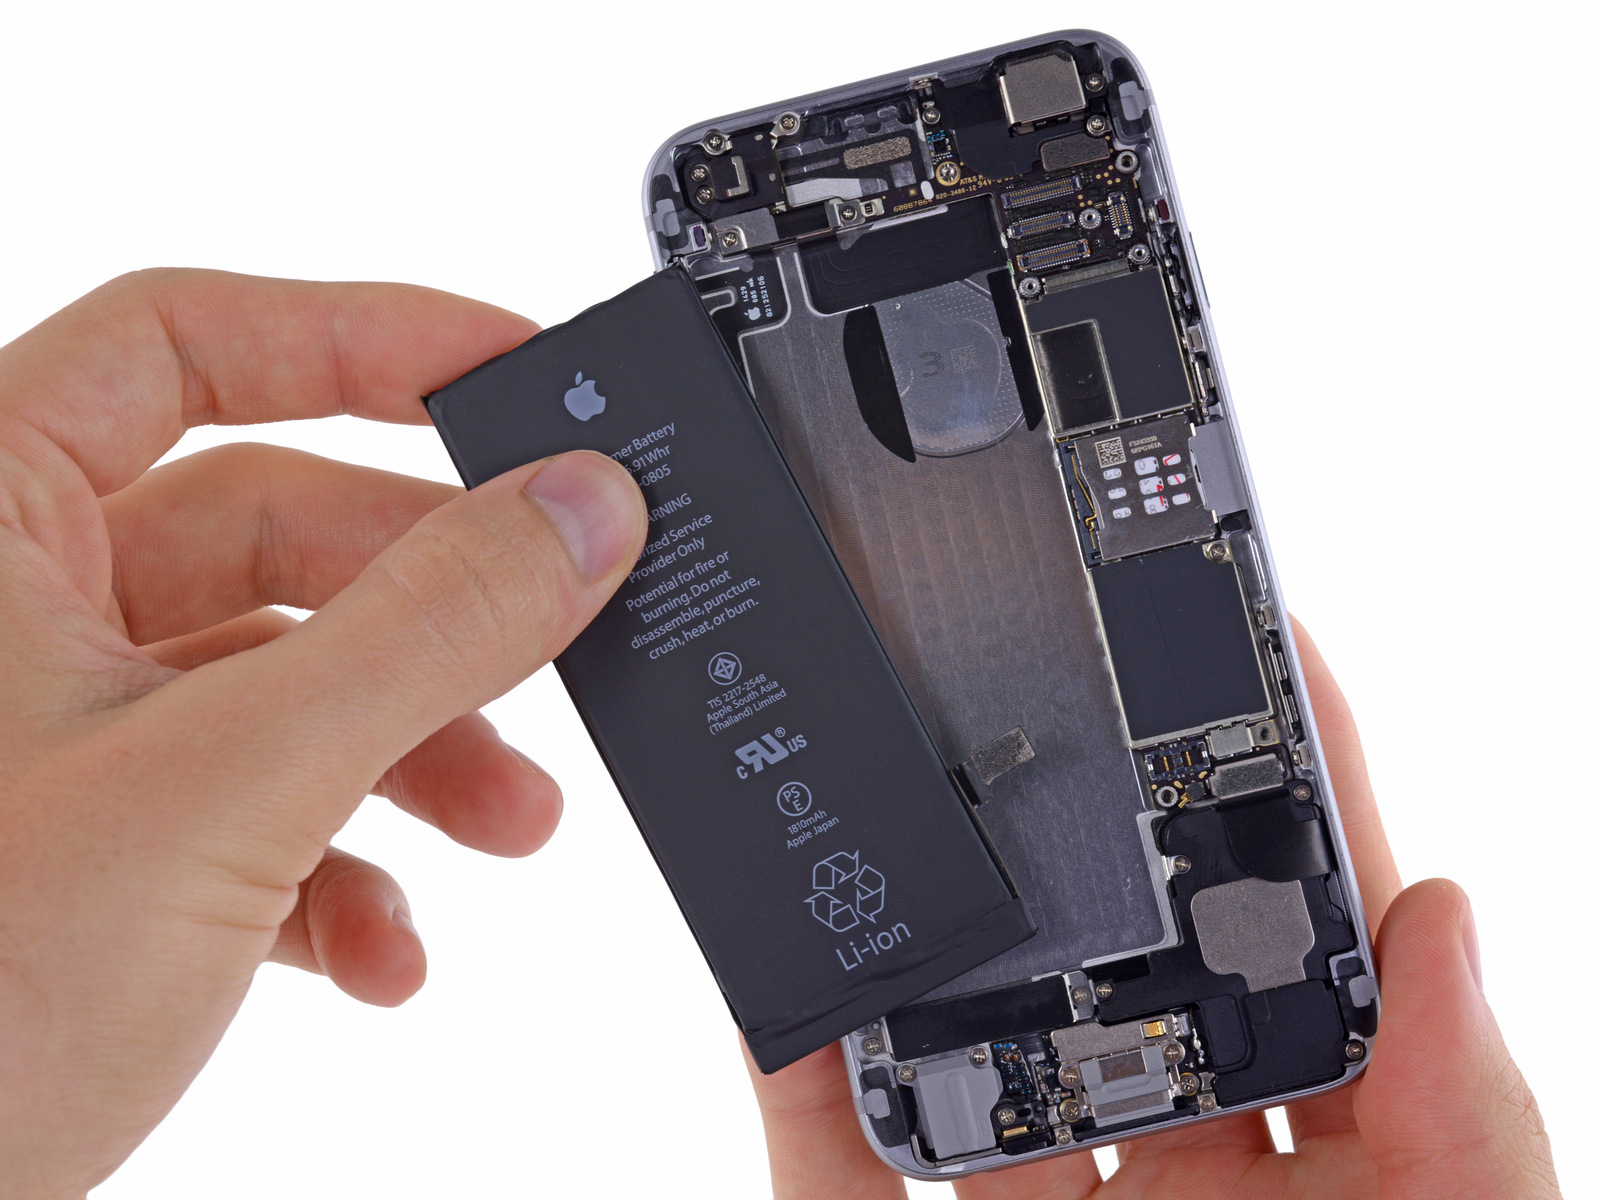 iFixit drops its iPhone battery replacement to $29, matching Apple's apology price